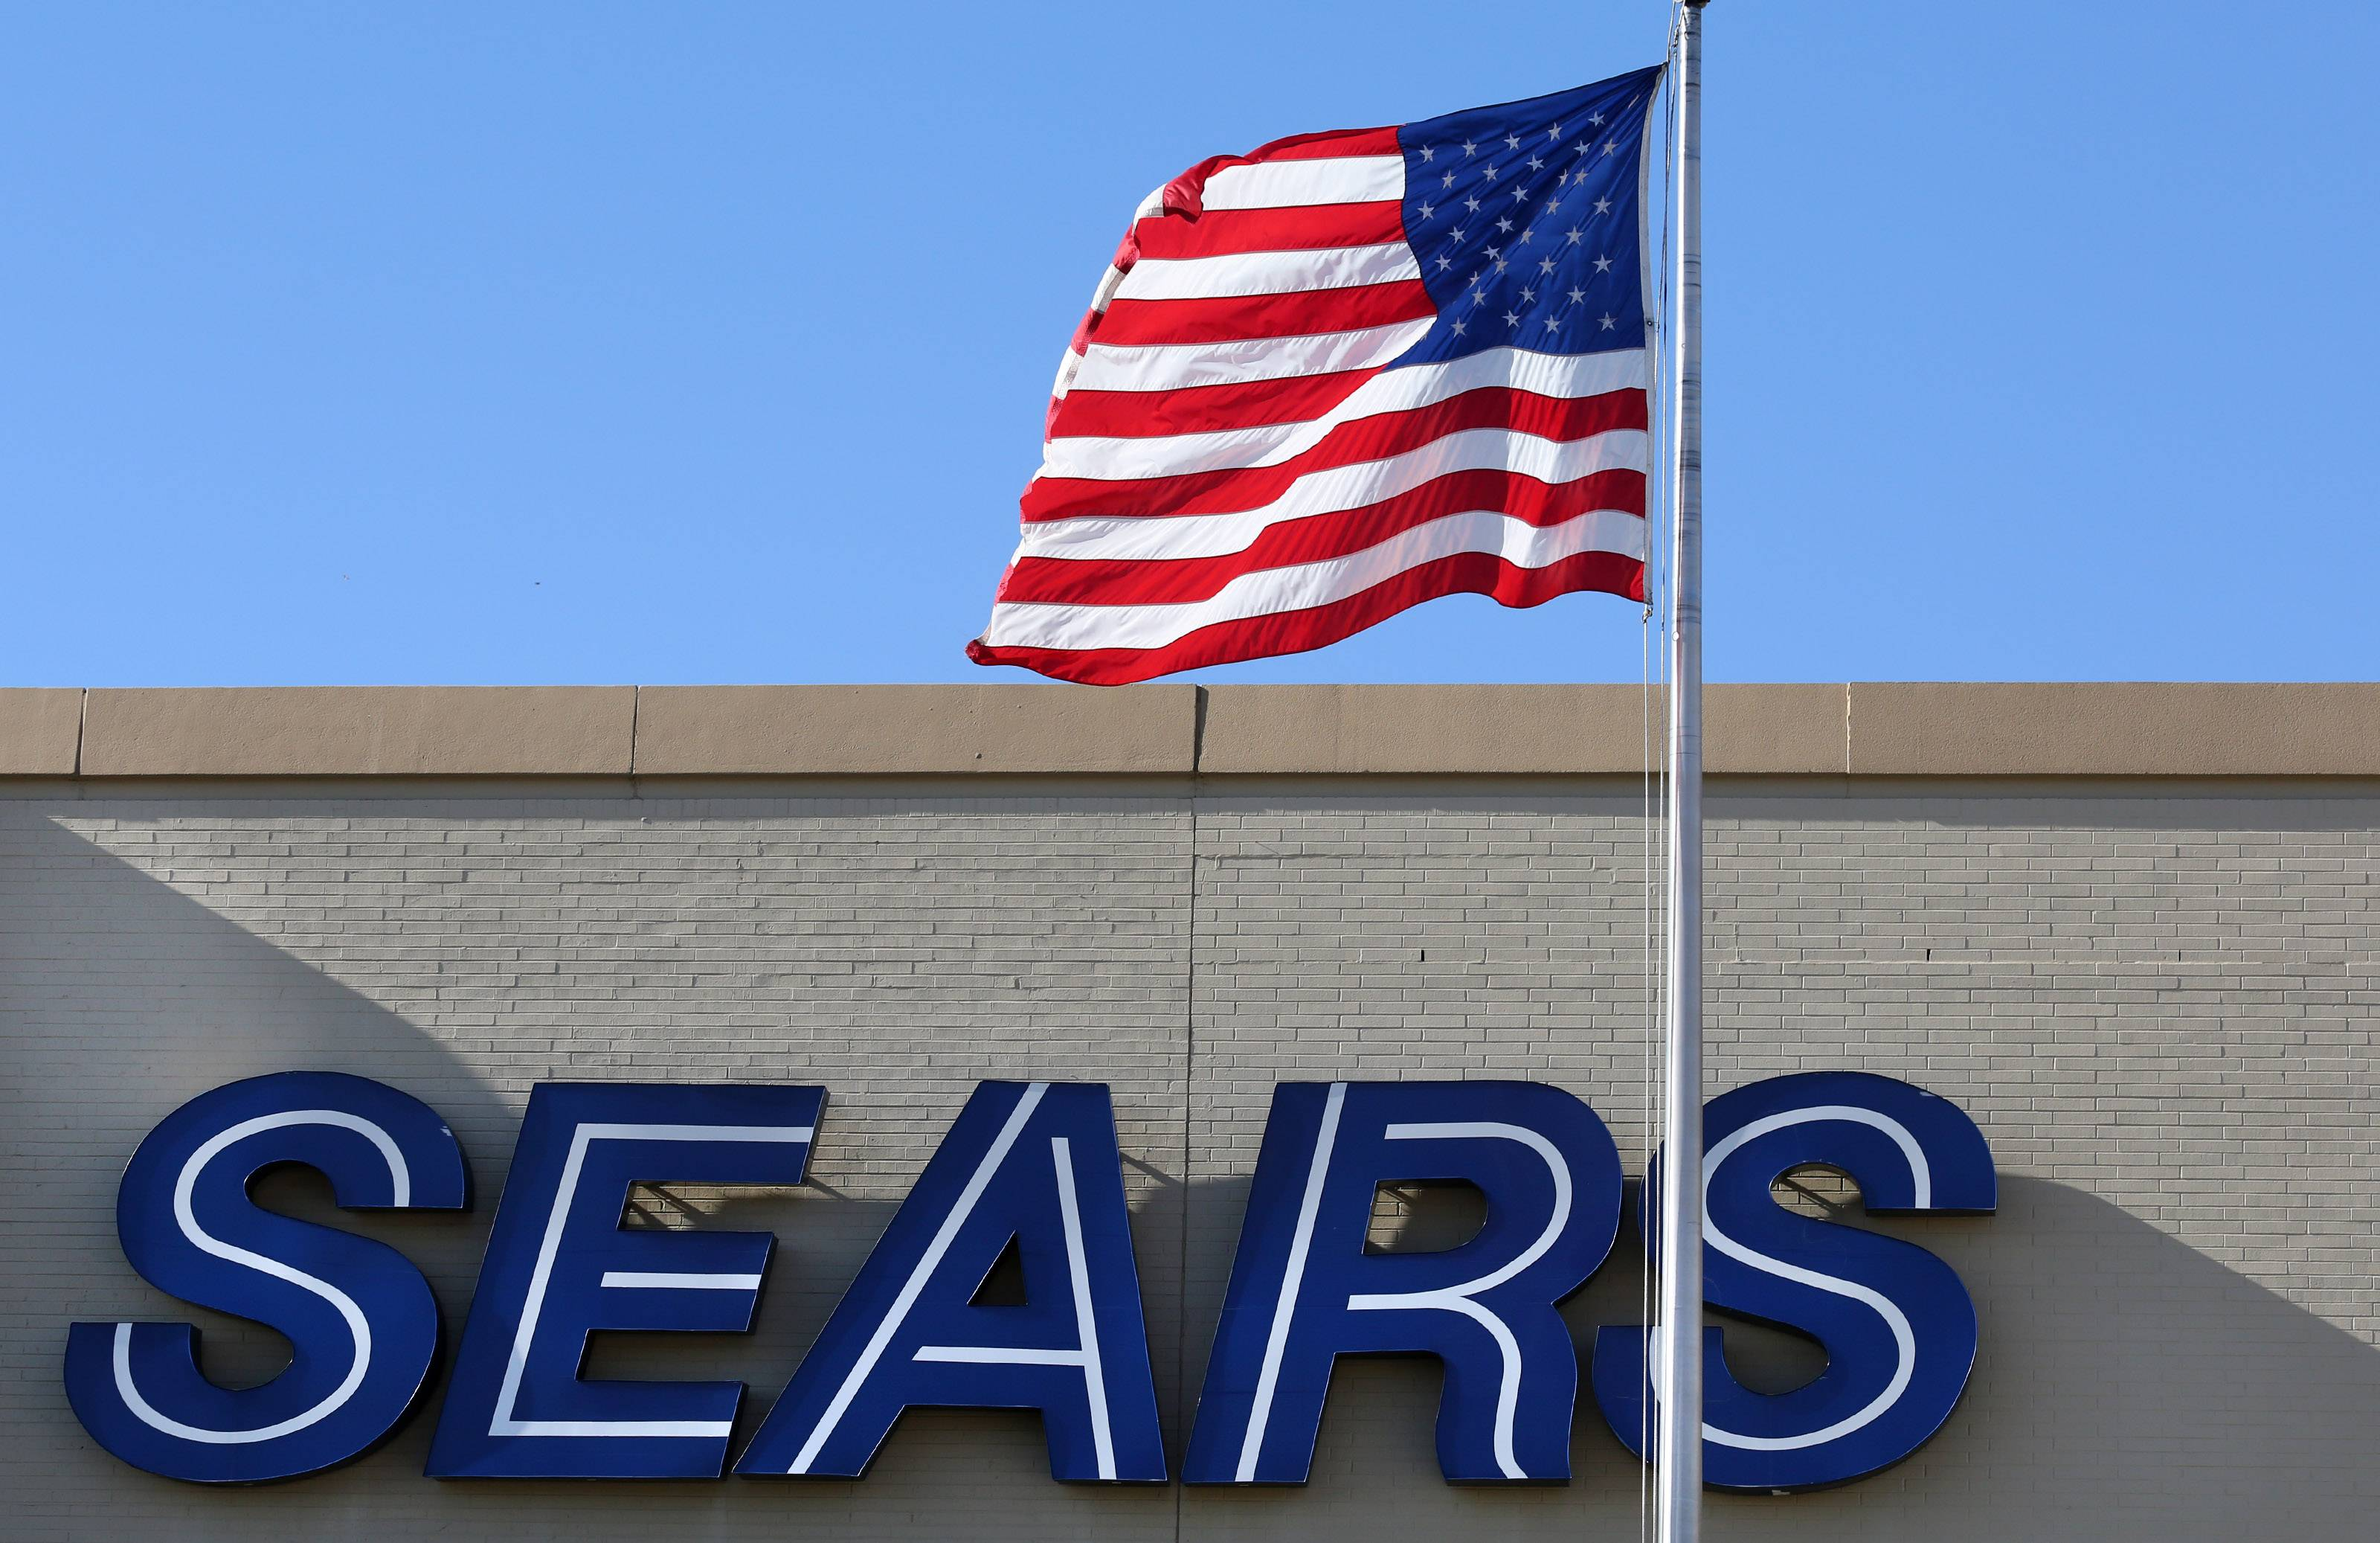 Six weeks after Hoffman Estates-based Sears filed for bankruptcy, CEO Edward Lampert is maneuvering to salvage what he can from the worst investment of his life. But he's also maneuvering around other prominent hedge funds that bet against them, as well as a long list of lenders who'd rather shut down the retailer and get whatever money they can now.